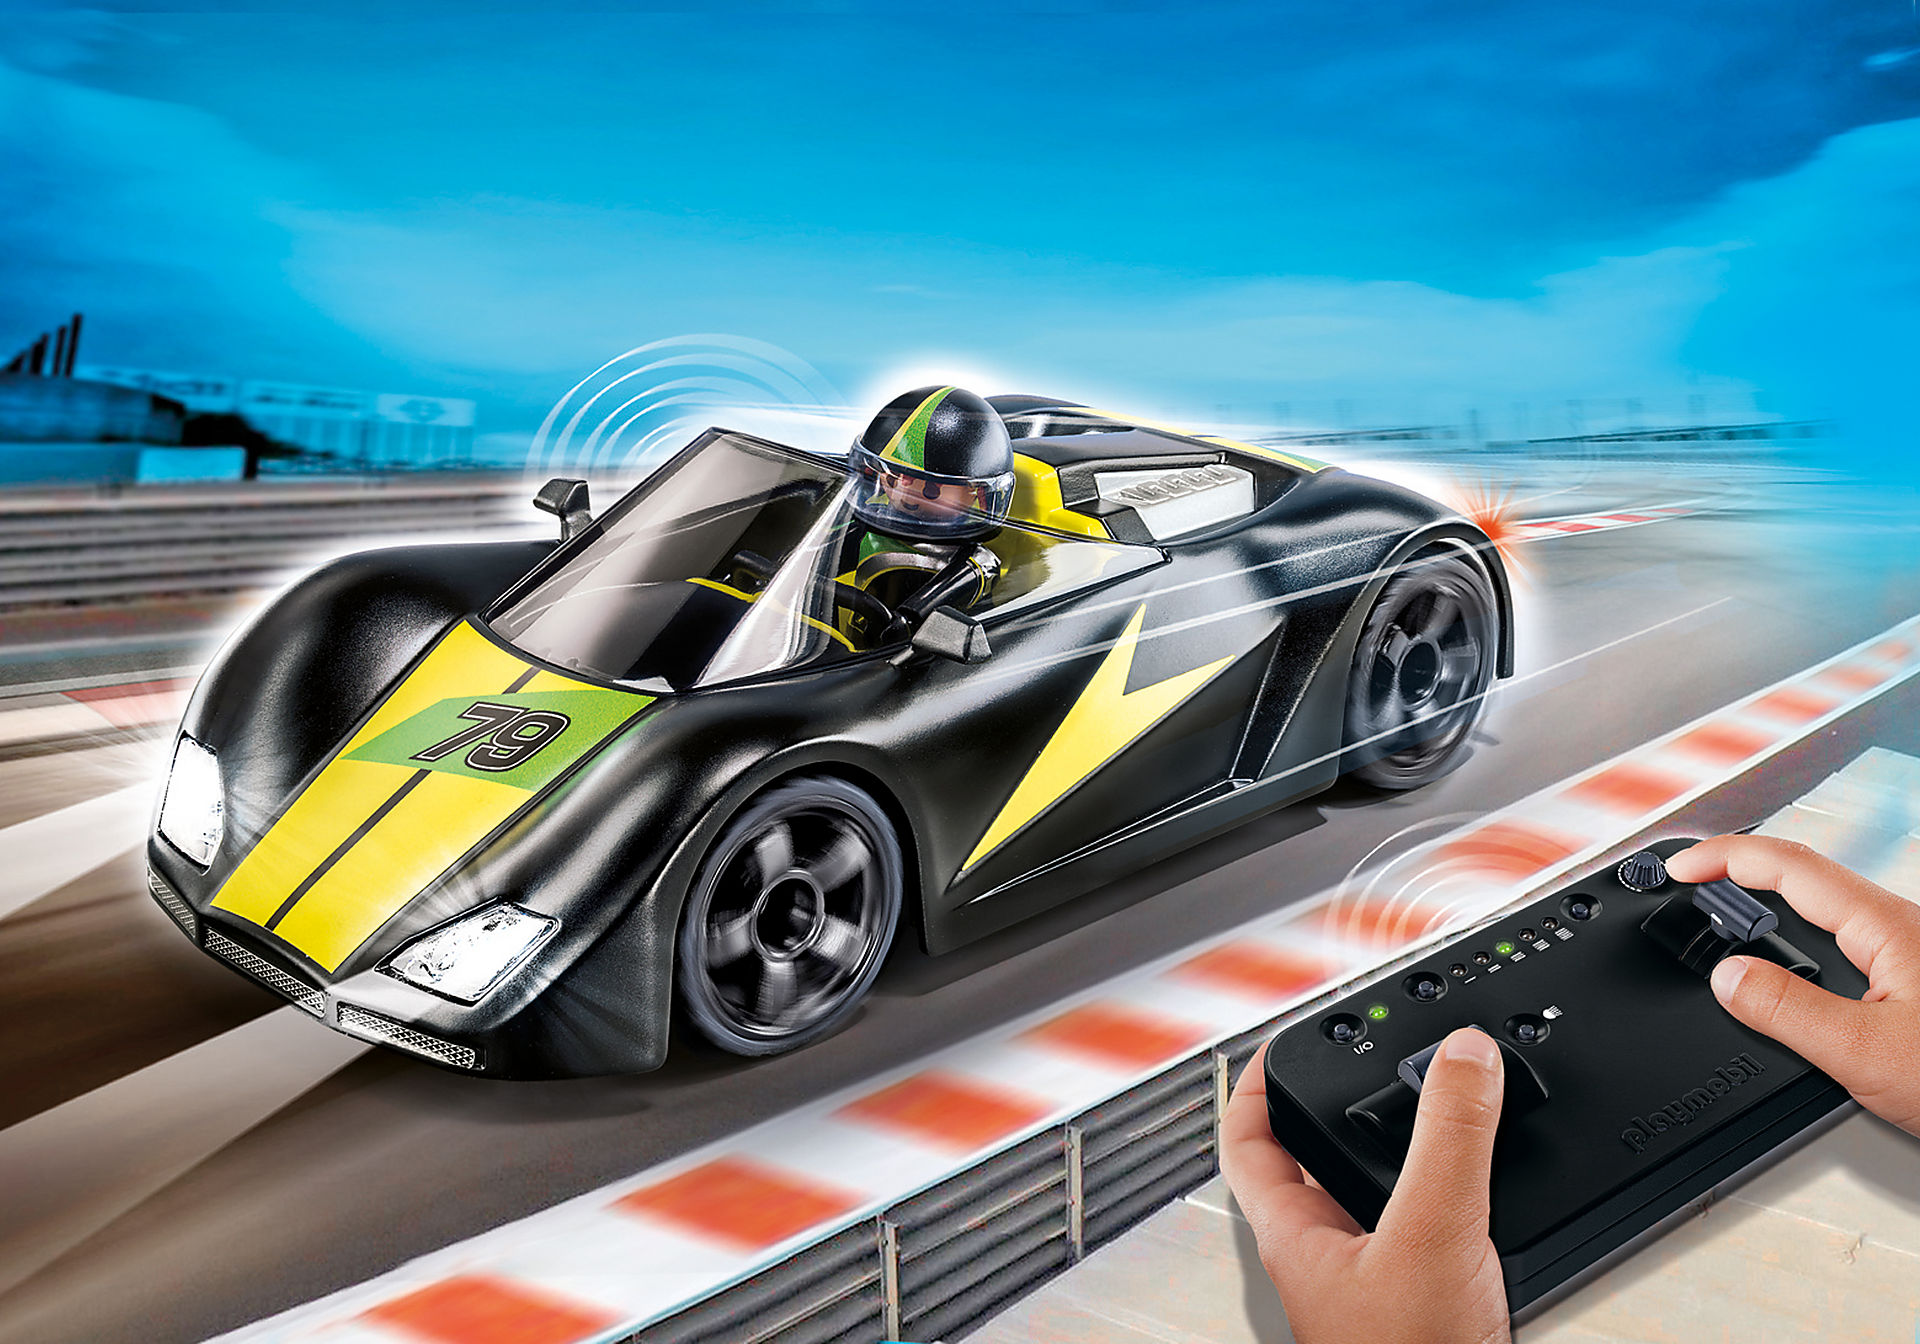 9089 RC Turbo Racer zoom image1